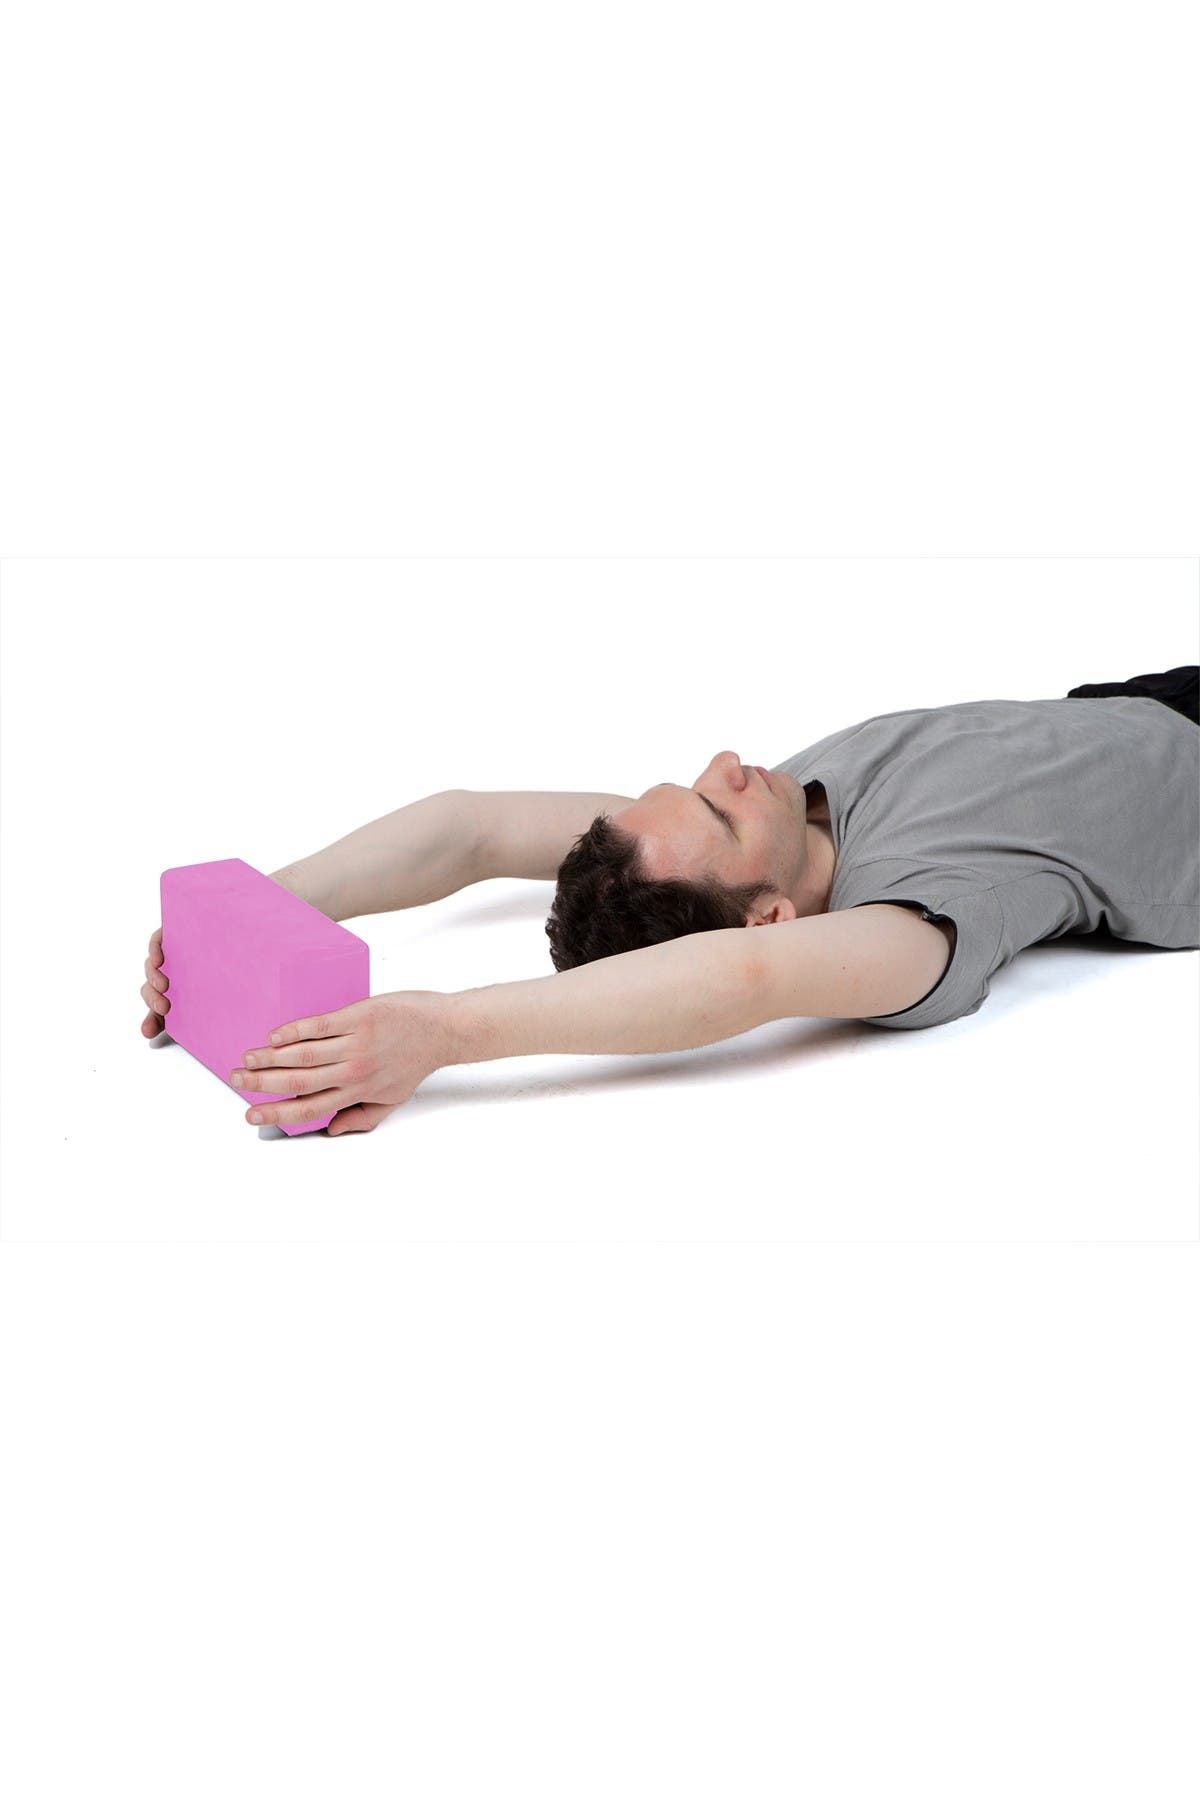 Image of MIND READER Yoga High Density EVA Foam Blocks